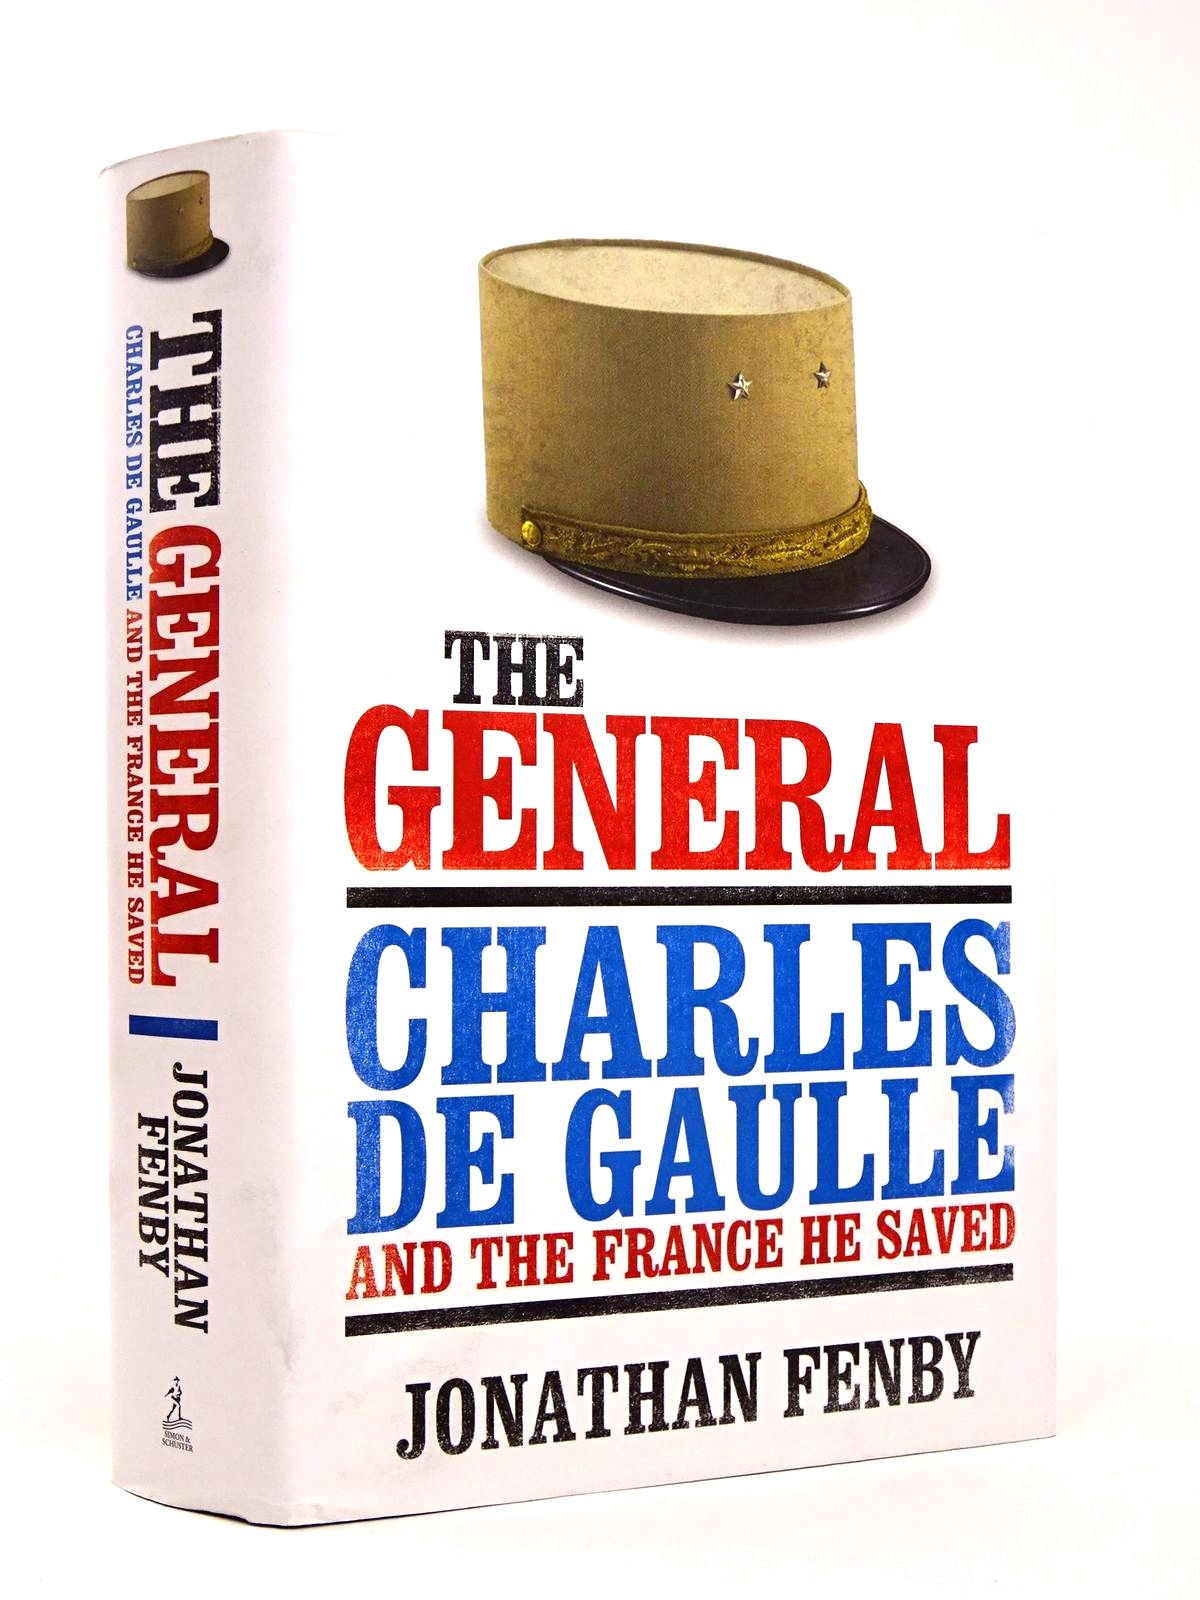 Photo of THE GENERAL: CHARLES DE GAULLE AND THE FRANCE HE SAVED written by Fenby, Jonathan published by Simon & Schuster (STOCK CODE: 1818598)  for sale by Stella & Rose's Books